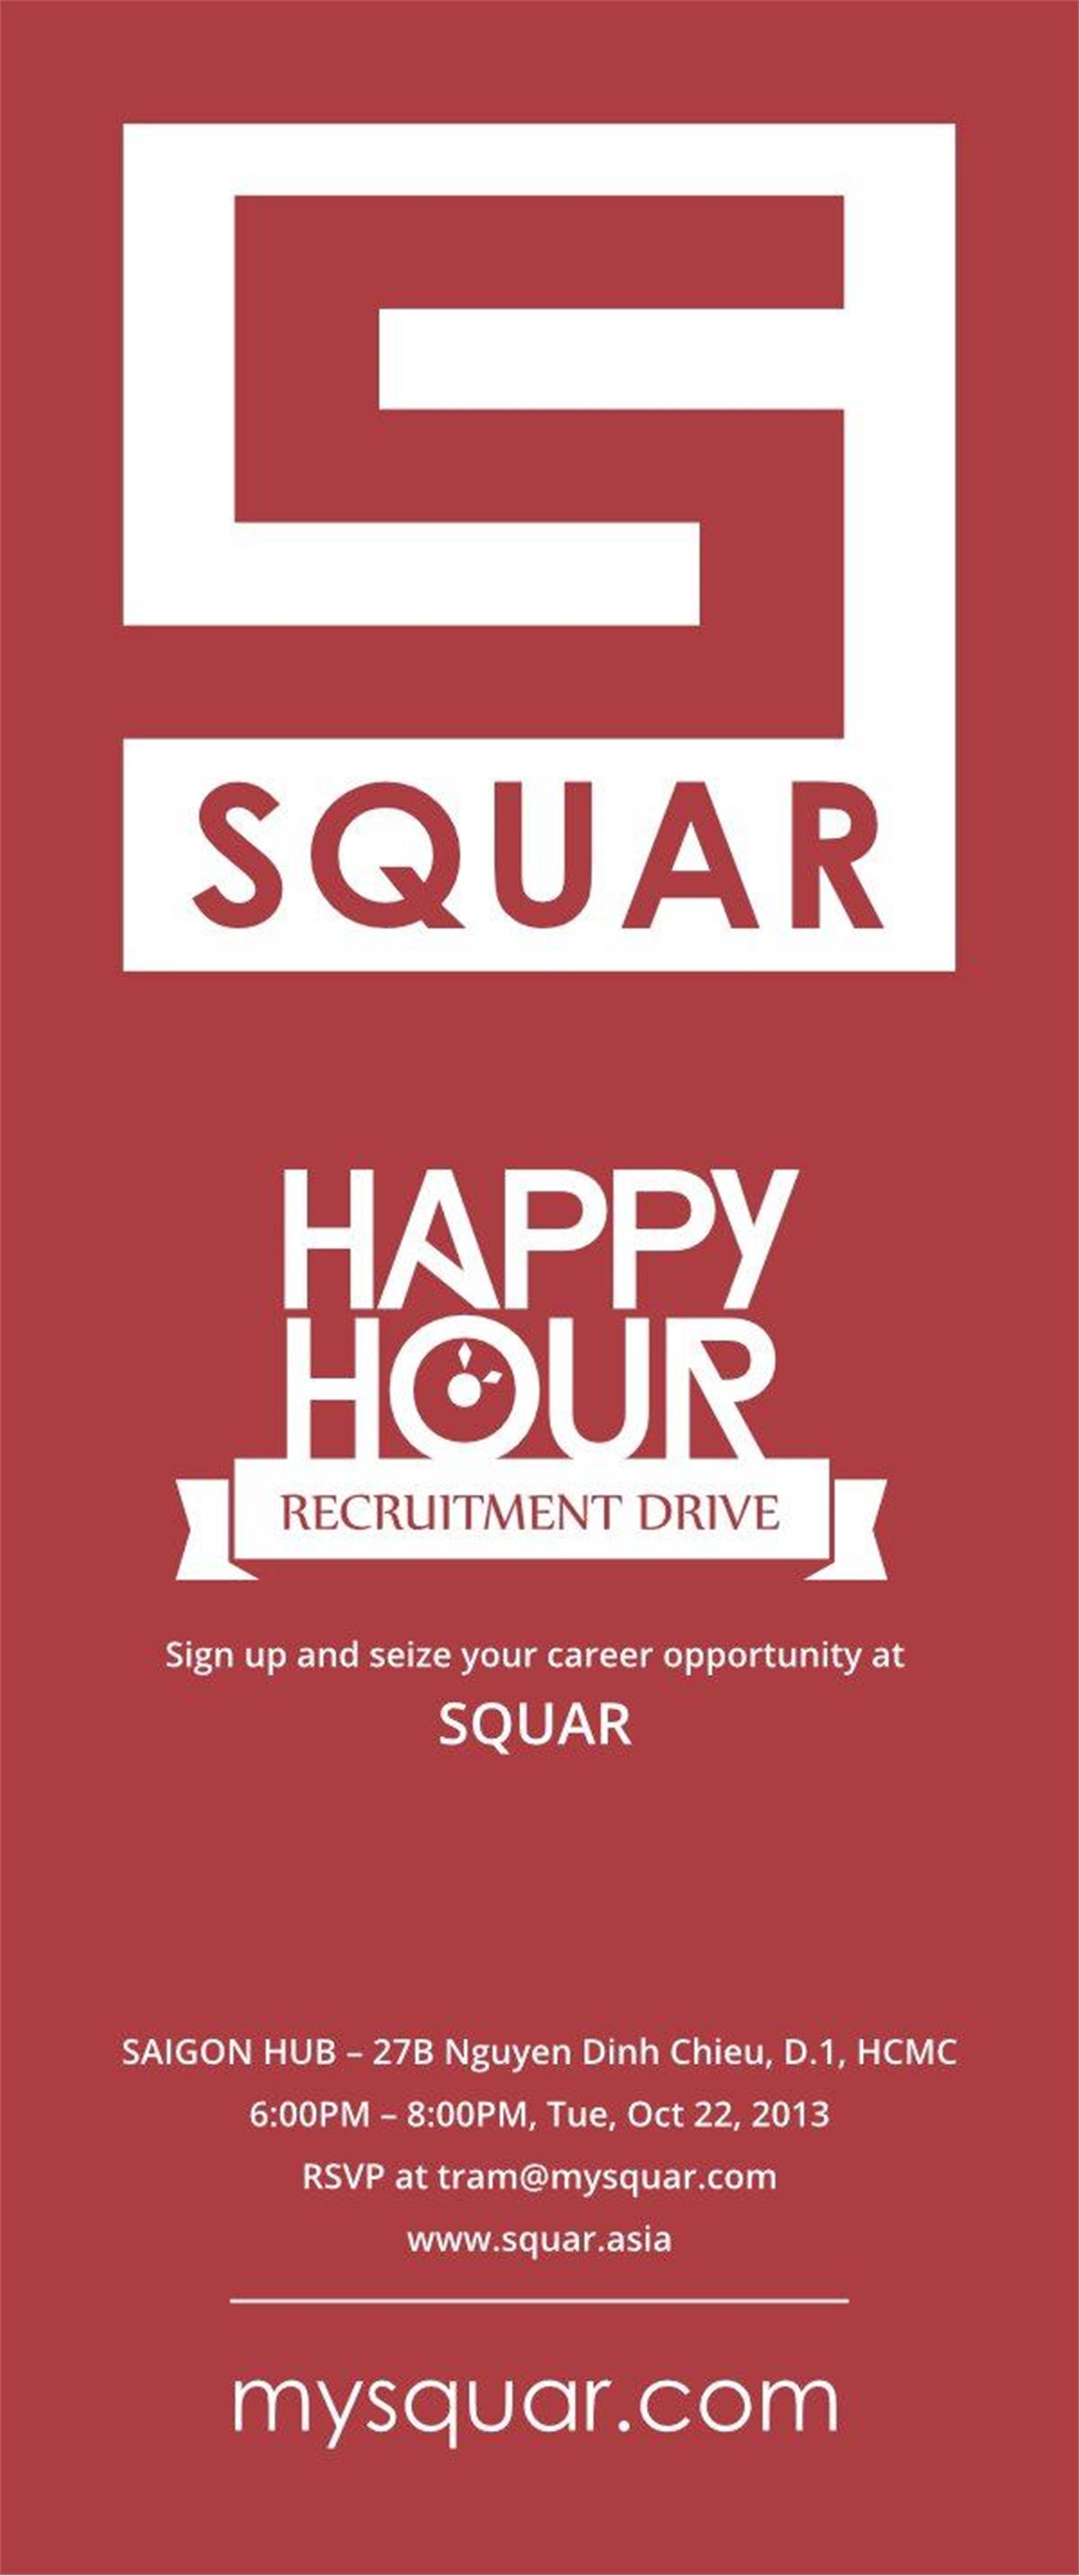 HAPPY HOUR with SQUAR | TicketBox | TicketBox vn